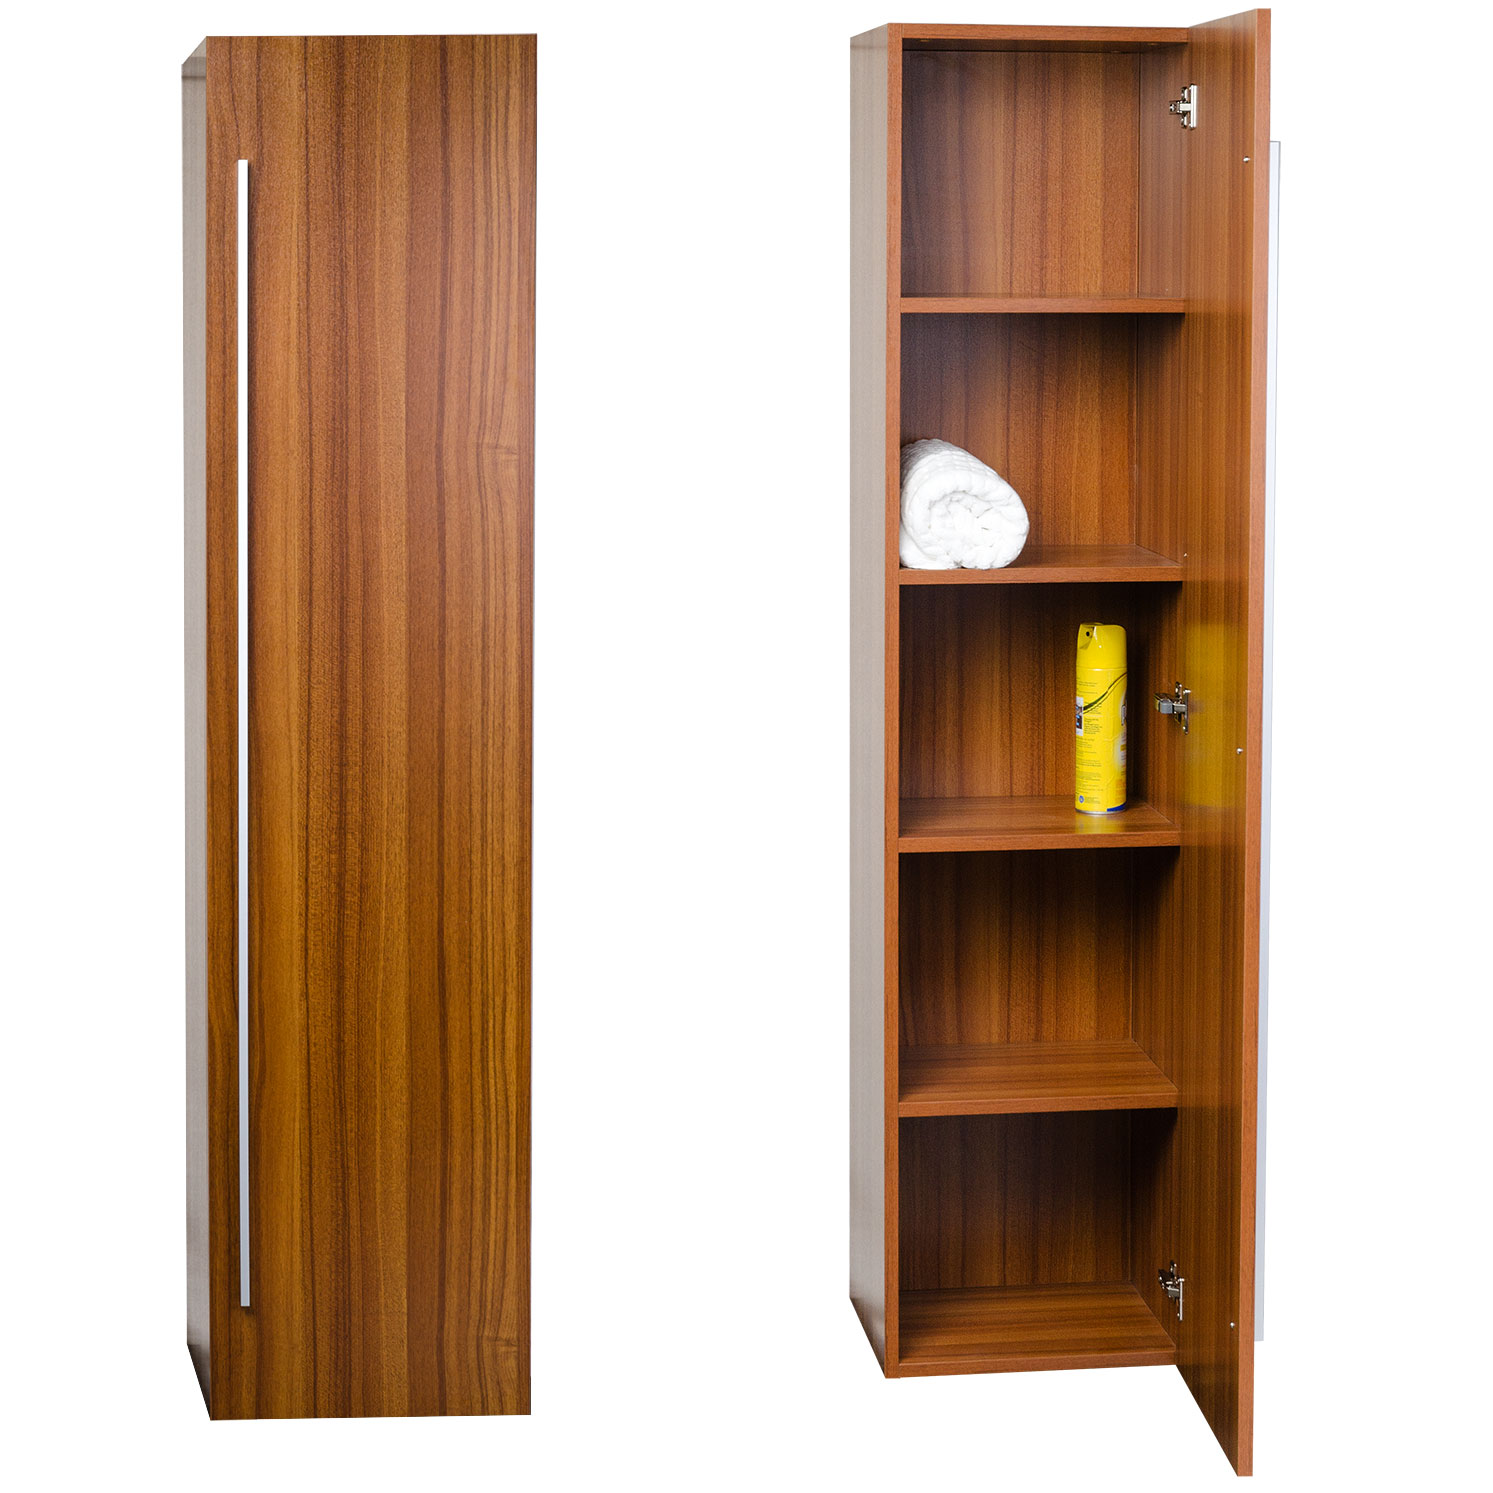 Buy 16 x 67 Linen Cabinet in Walnut TN-N1200-SC-TK on ConceptBaths.com